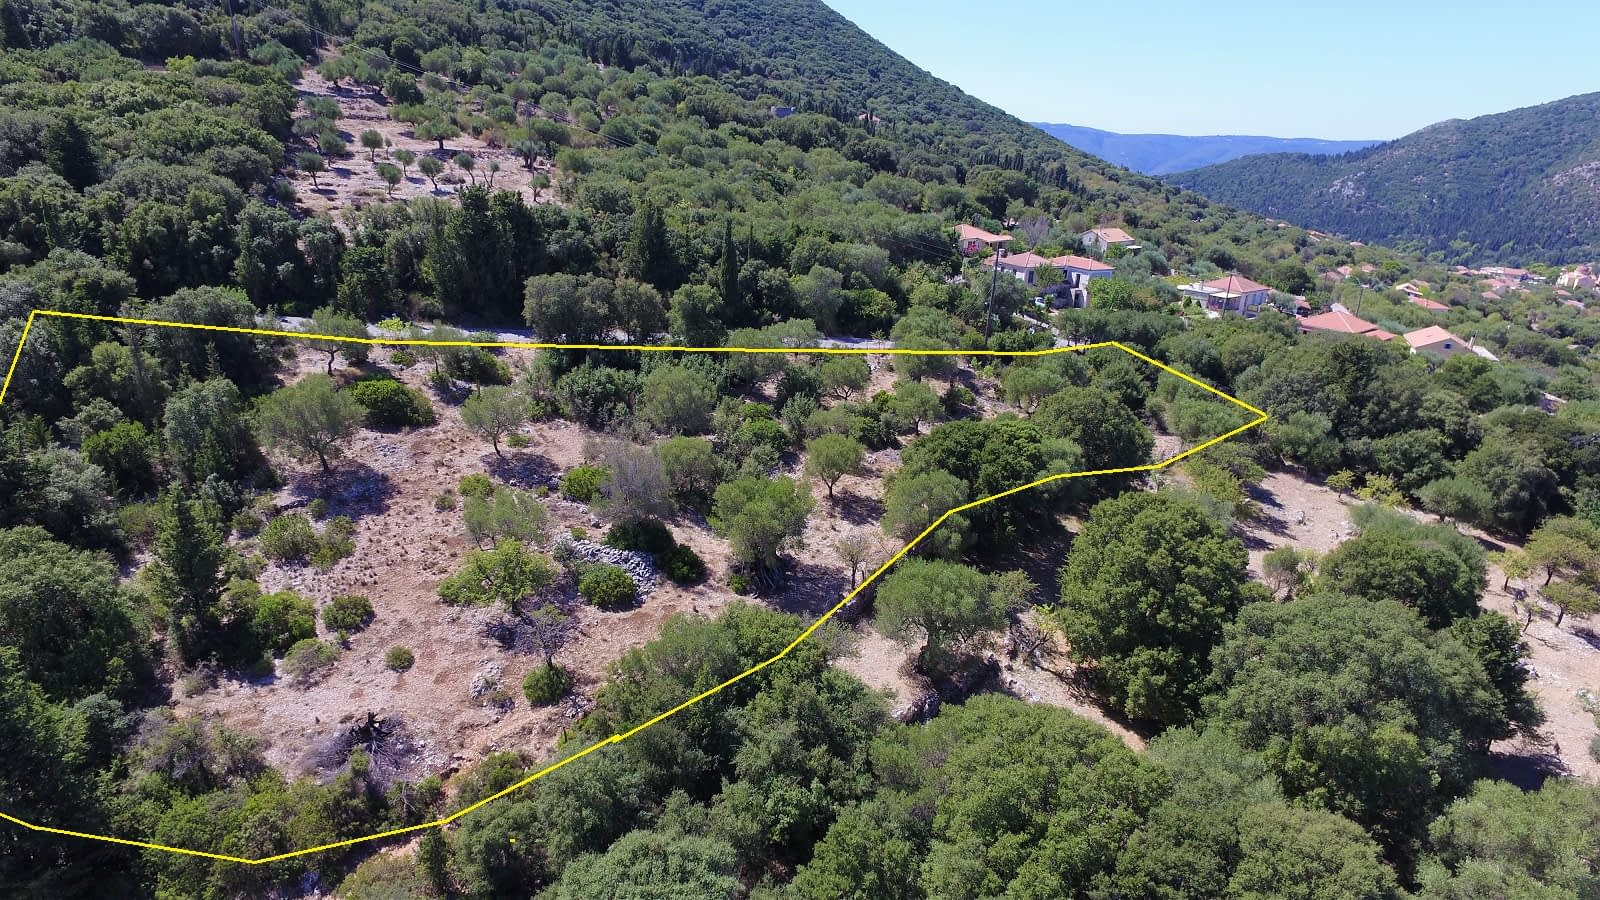 Aerial landscape view from land for sale in Ithaca Greece Stavros